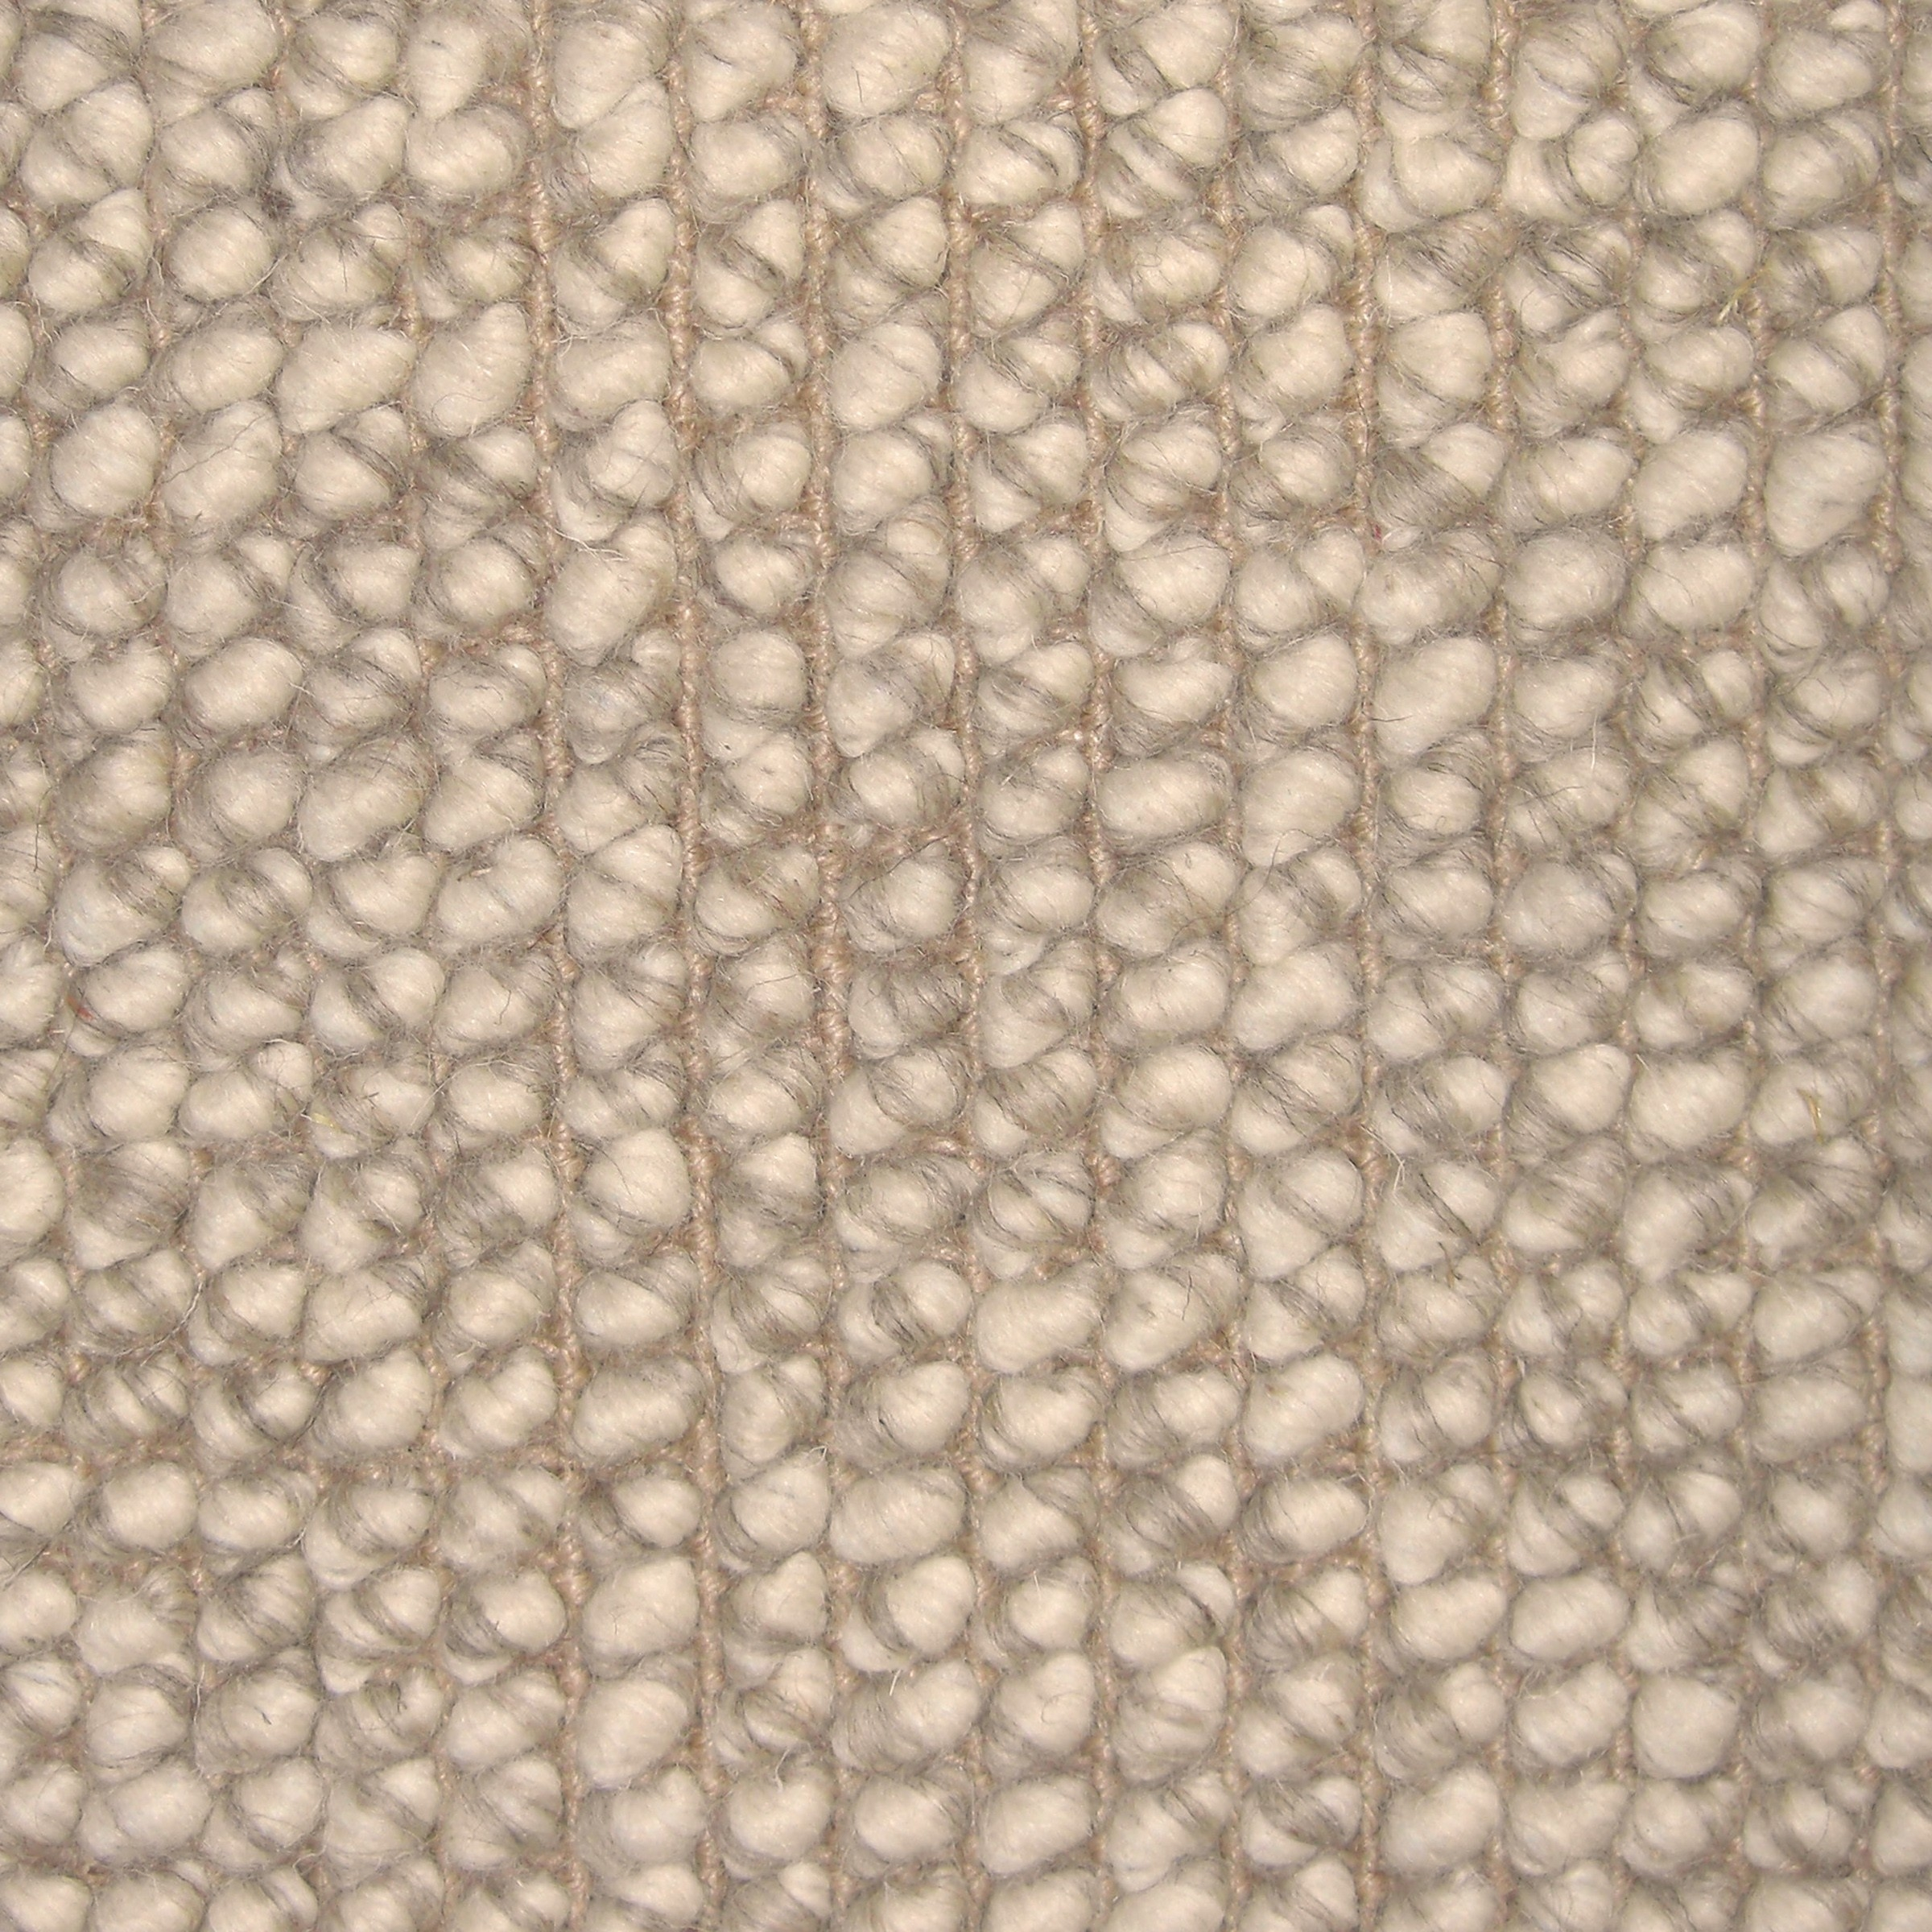 Wool Jute Area Rugs Roselawnlutheran In Wool Jute Area Rugs (#12 of 15)